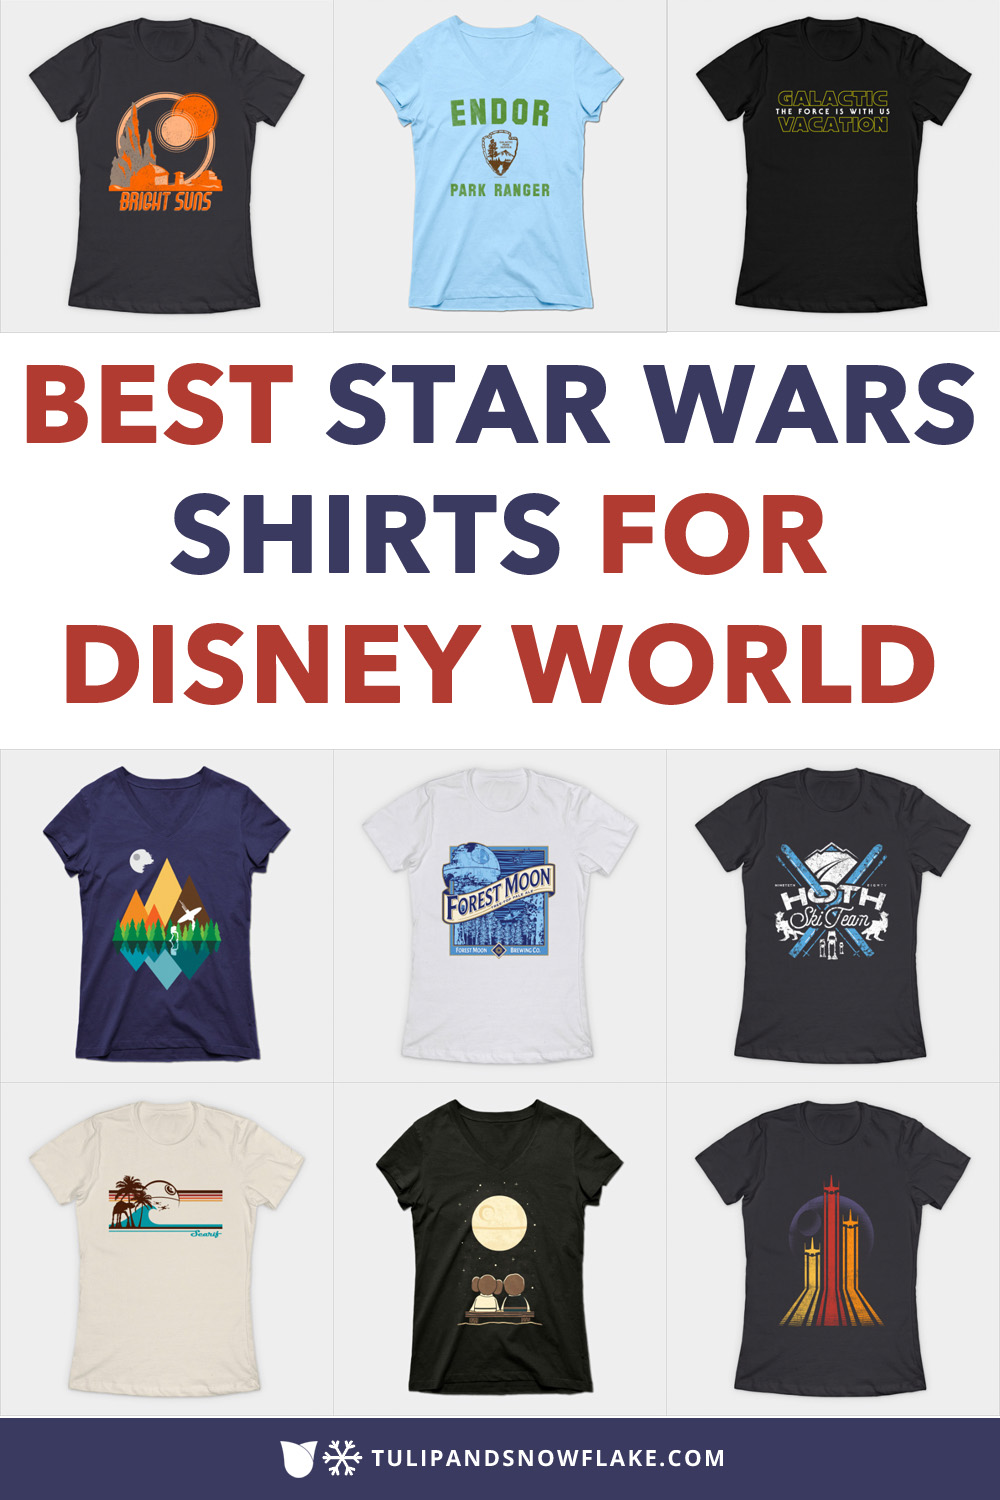 Best Star Wars Shirts for Disney World